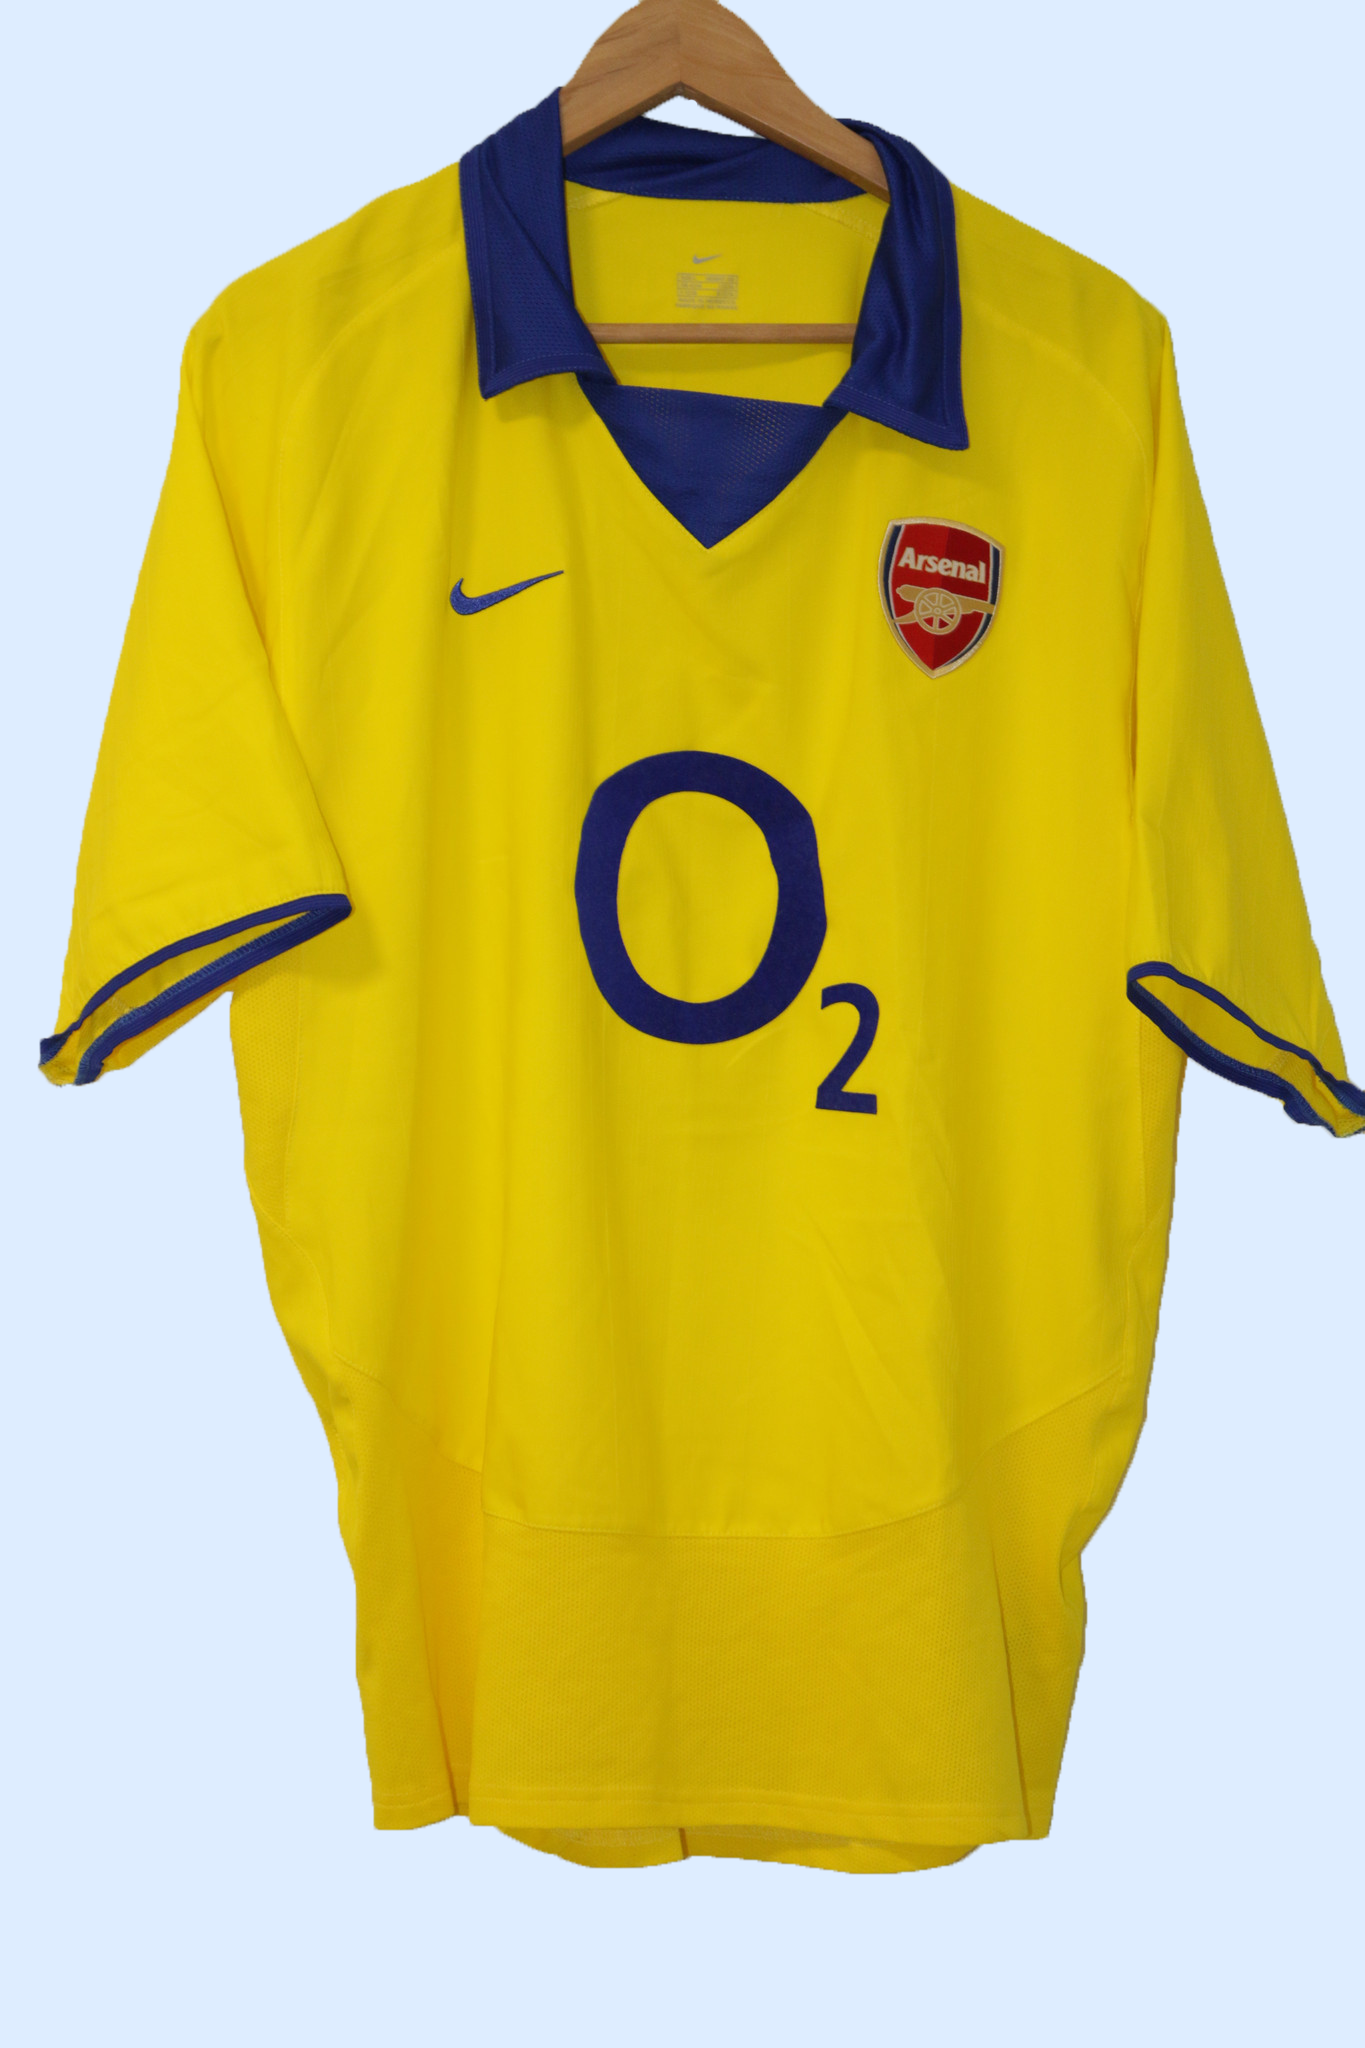 Arsenal 2002-2003 / 2003-2004 'Invicibles' Away Shirt XL Nike 2